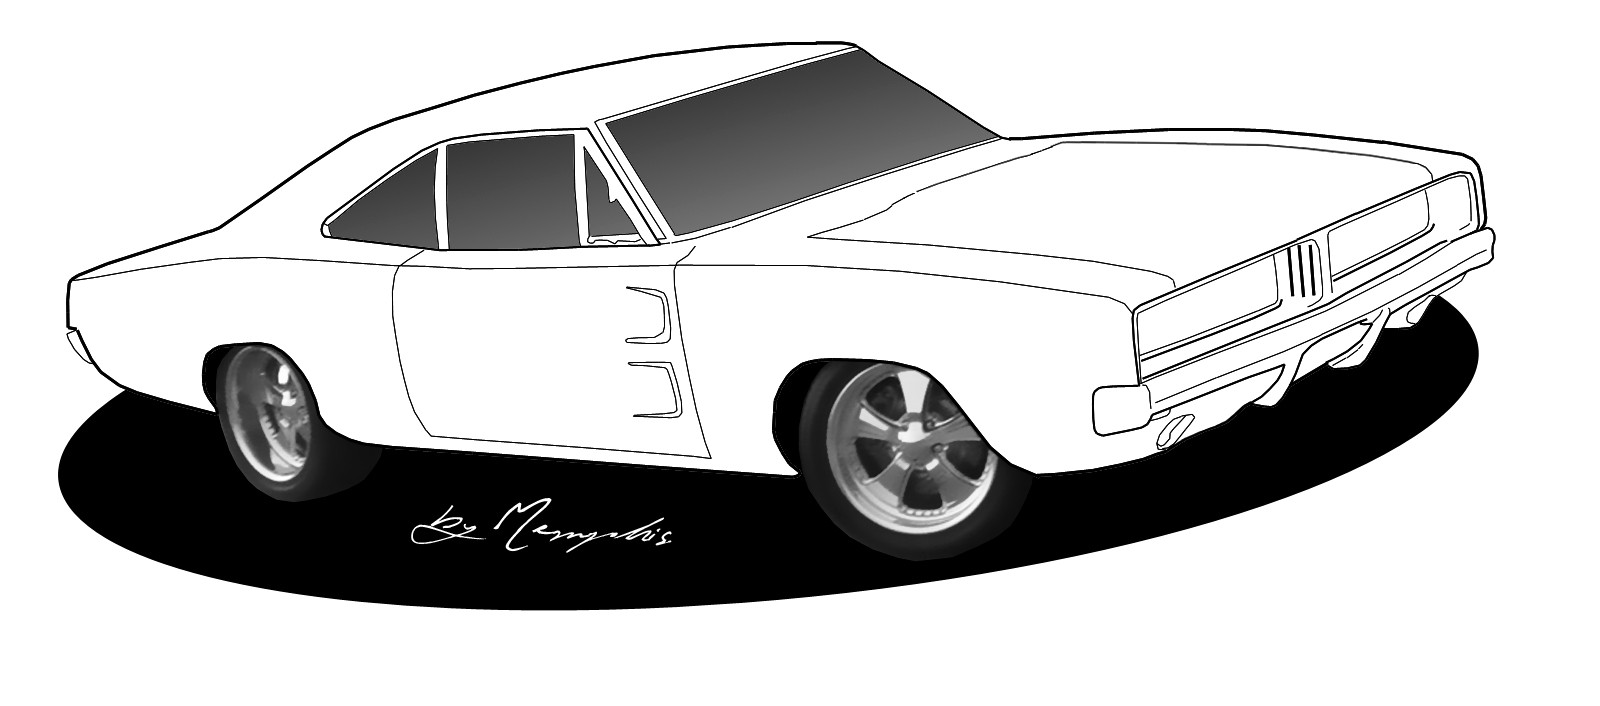 1600x706 Drawings Of Cool Cars Black And White Car Free Download Clip Art